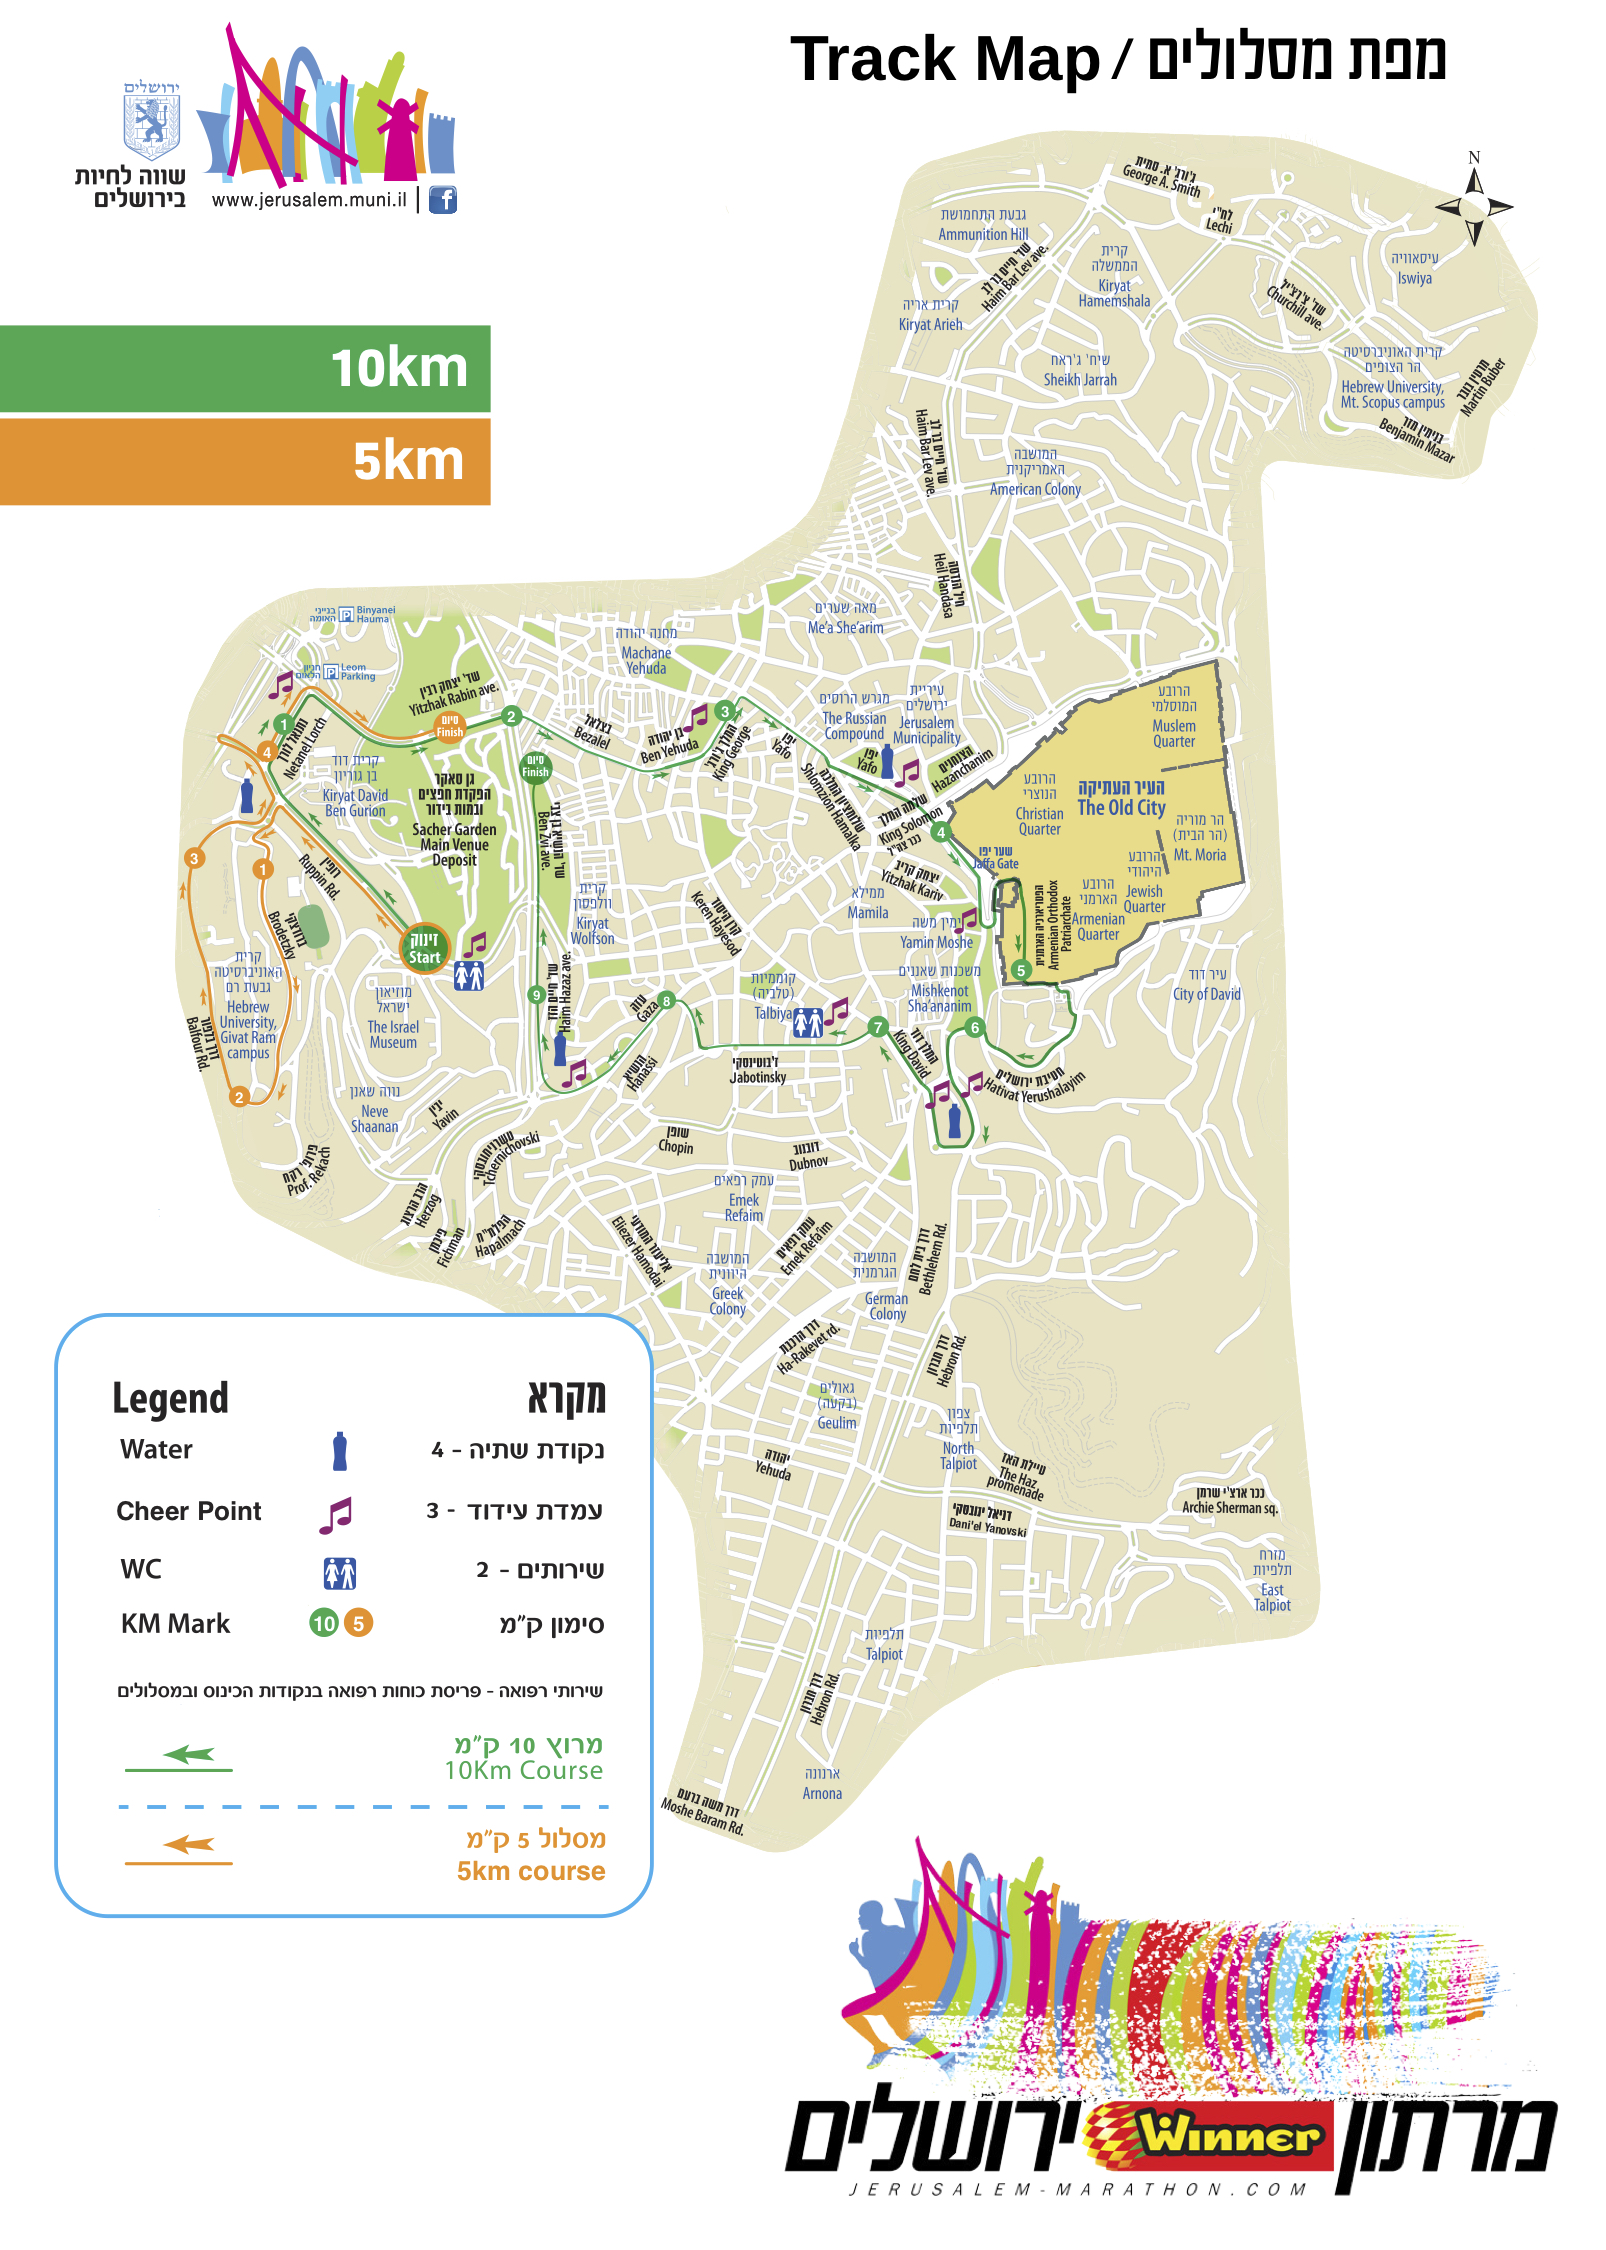 Jerusalem marathon 2019 map